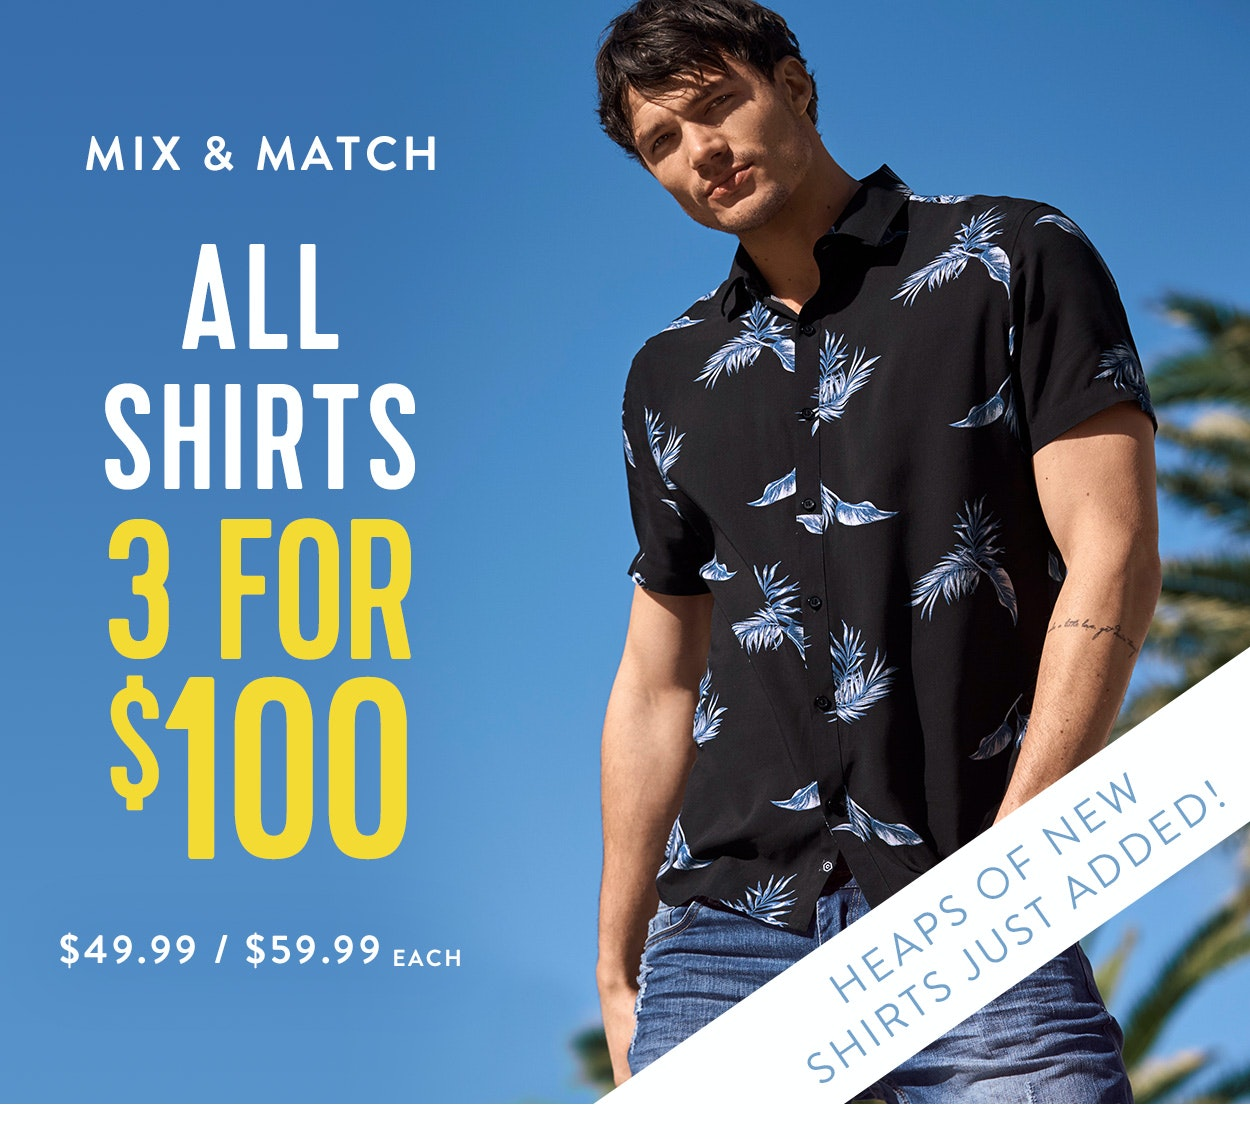 Shop Shirts 3 for $100